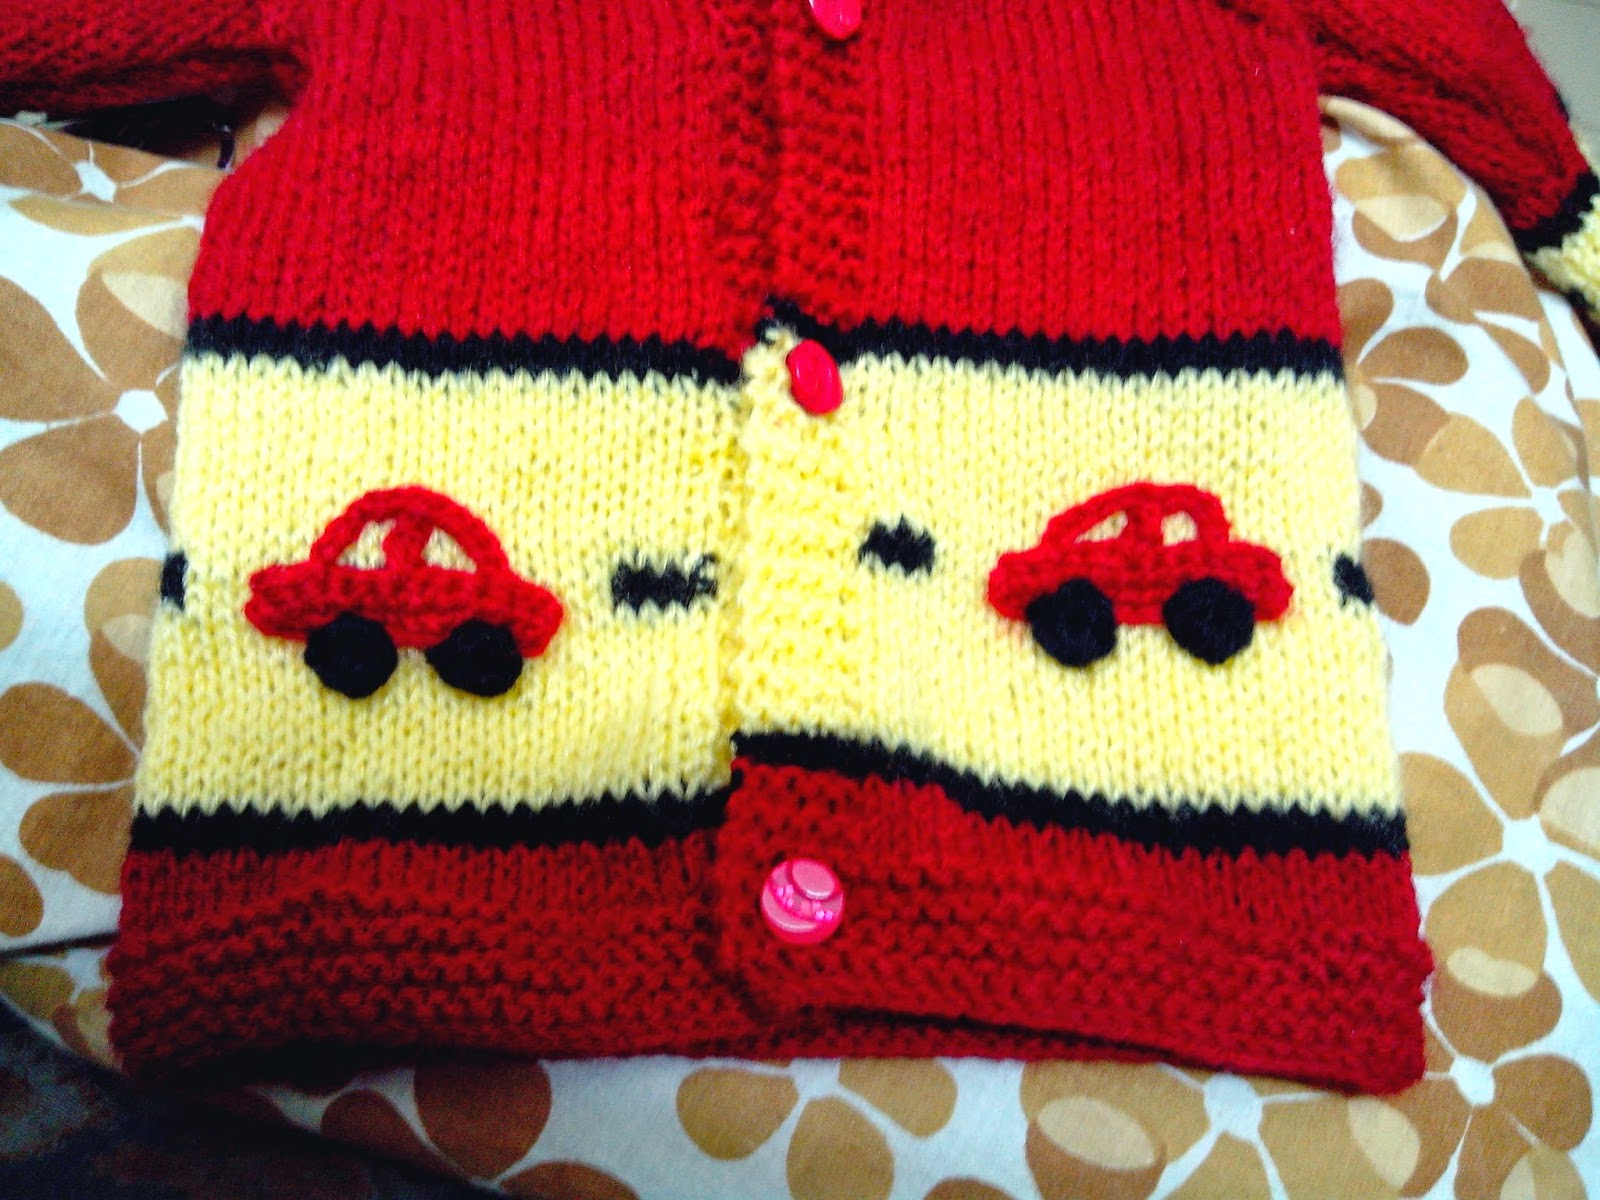 boys' handknit sweater, sweater with little cars